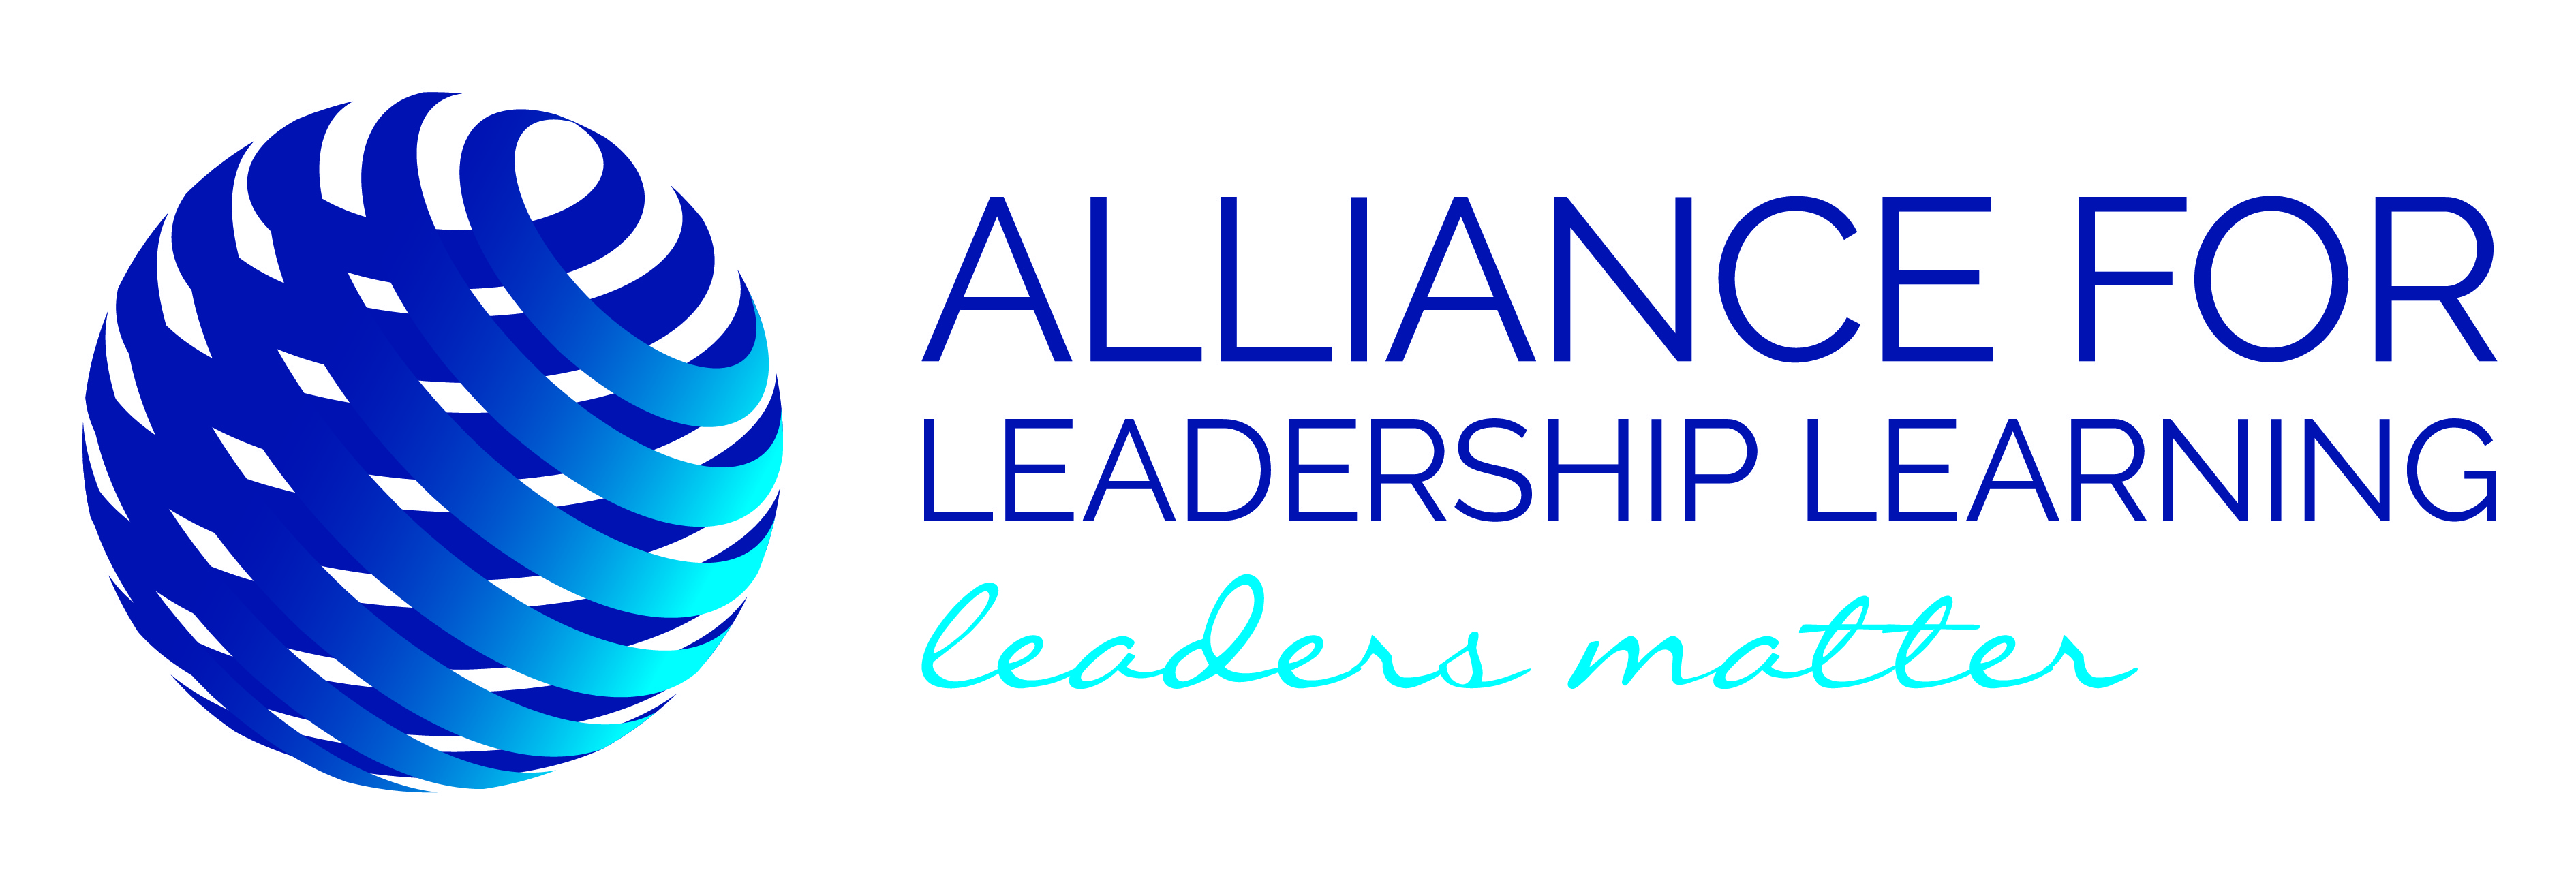 Alliance for Leadership Learning